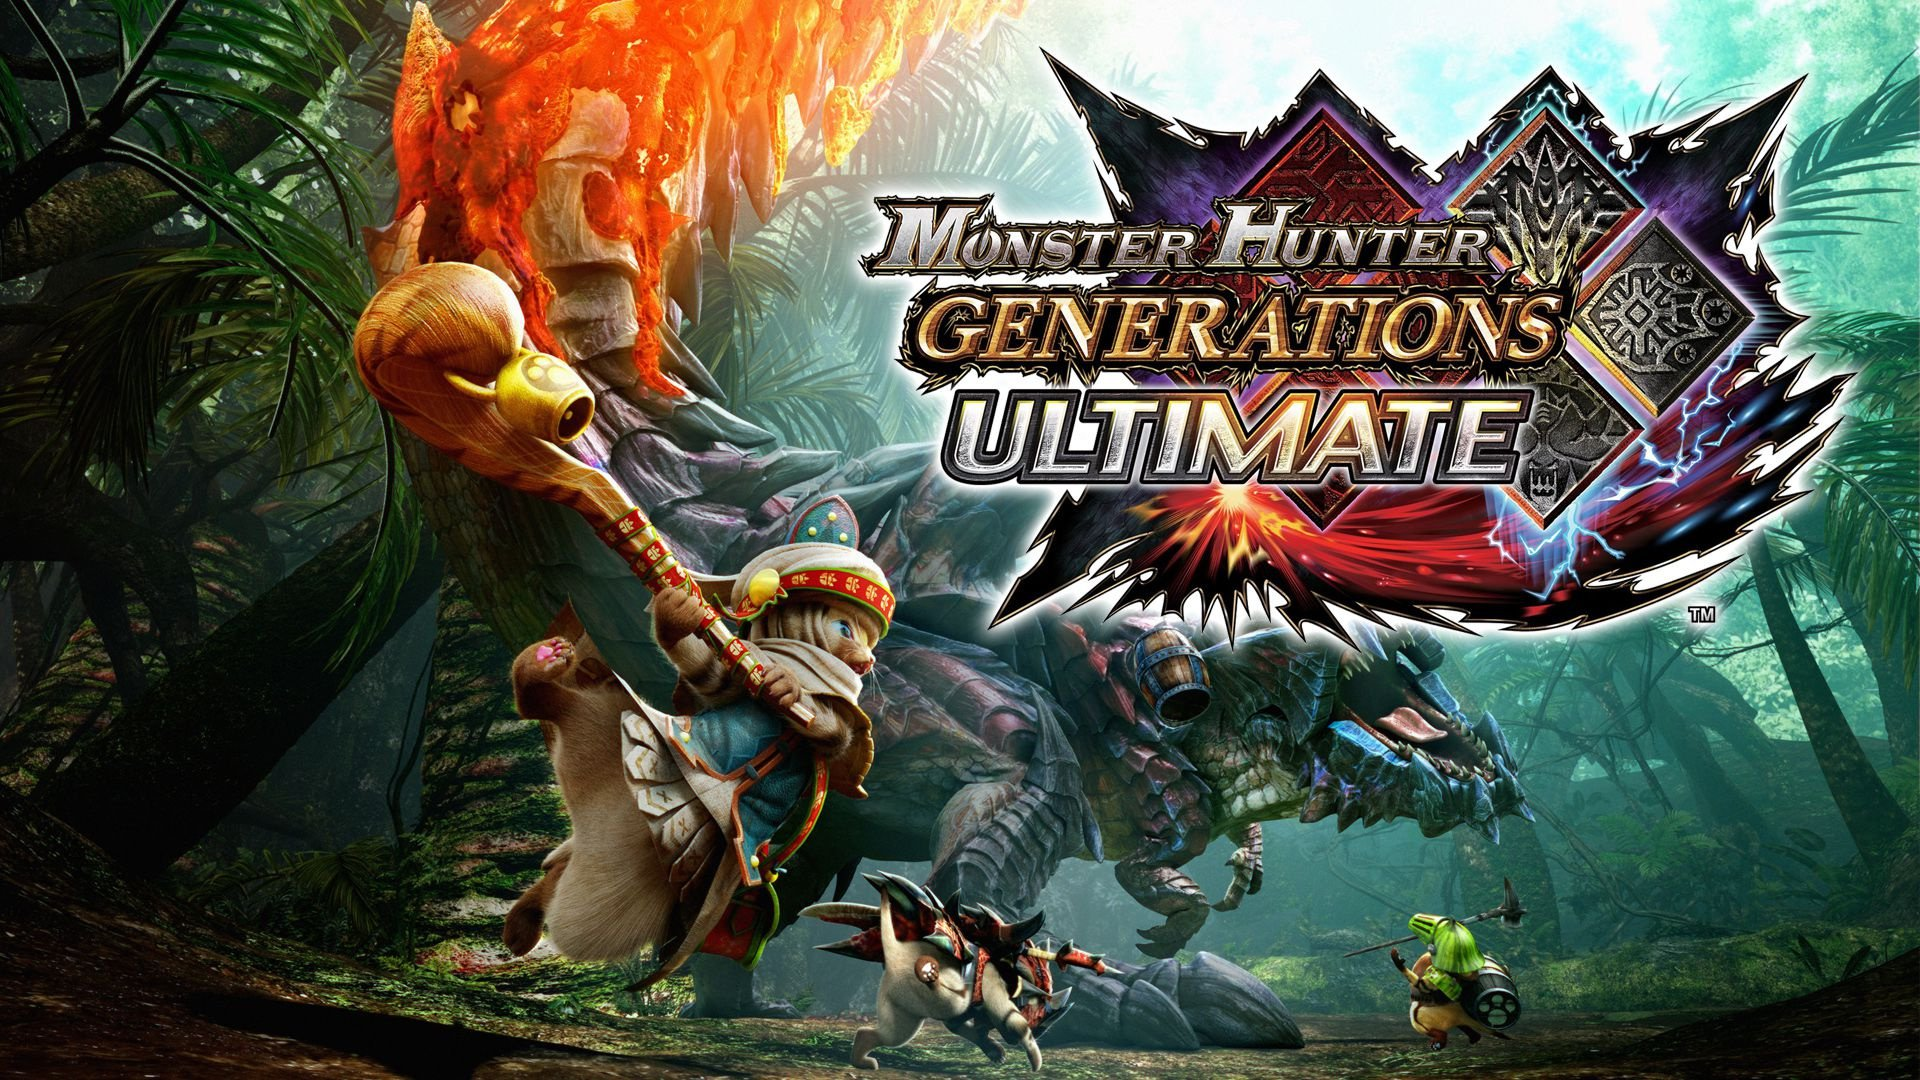 Getting Started With Monster Hunter Generations Ultimate on